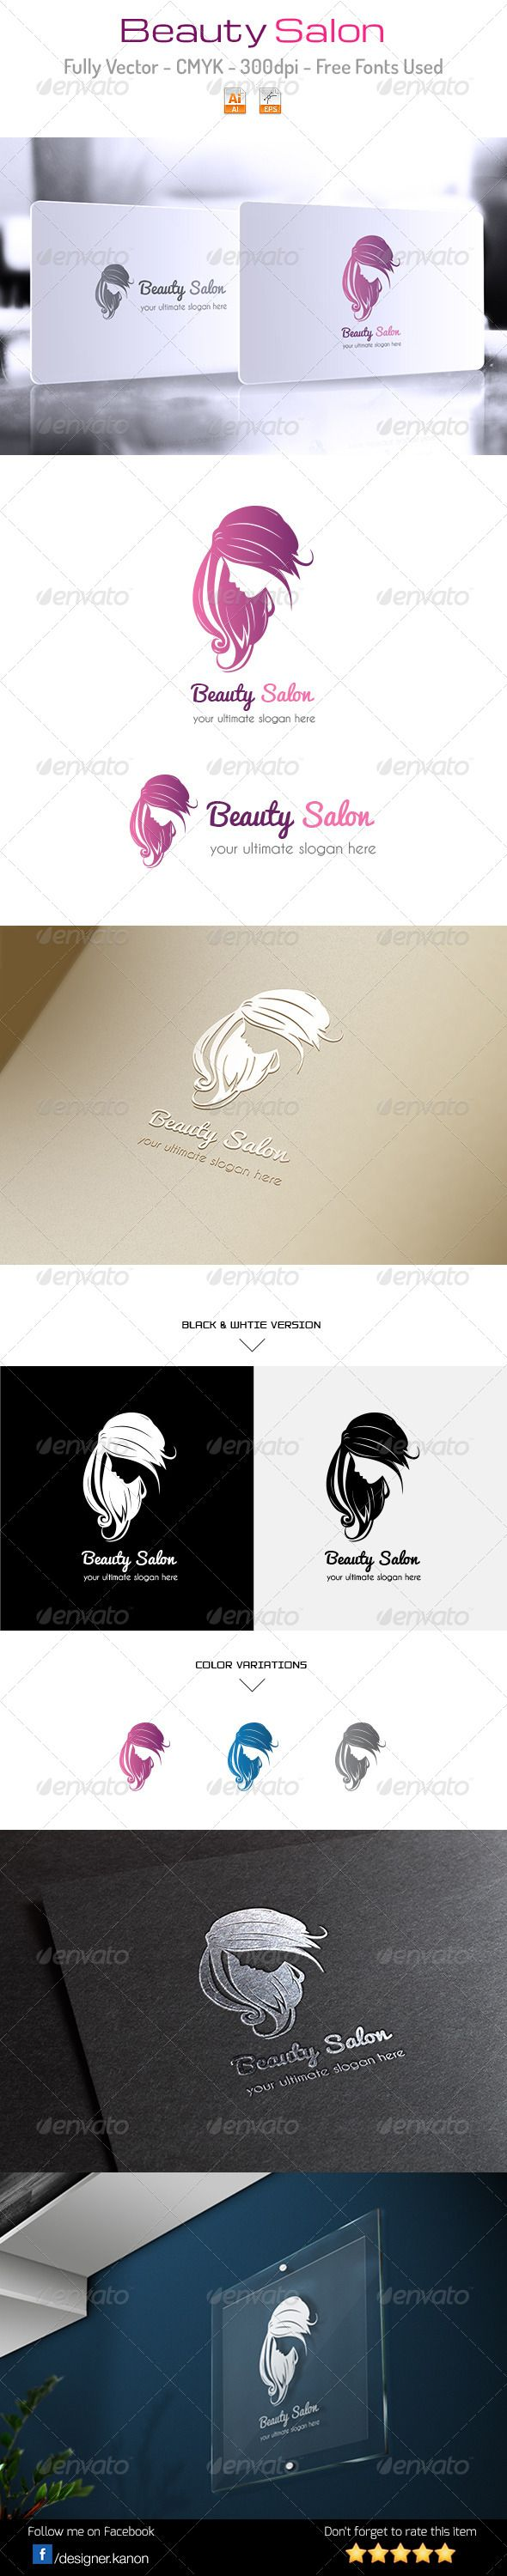 Beauty Salon Logo #GraphicRiver Beauty Salon is a best logo for many type of businesses, such as fashion, hairdresser, spa, saloon, natural products, shampoo, hair vitamin, beauty salons, gift shops, jewelers, florists and many others Everything is done in vector, so it his highly customizable and can be resized without loss of quality. Excellent logo,simple and unique. Included : AI, EPS_10, CDR. File is easy to editing. Font used : Pacifico Caviar Dreams If you buy and like it, please rate…